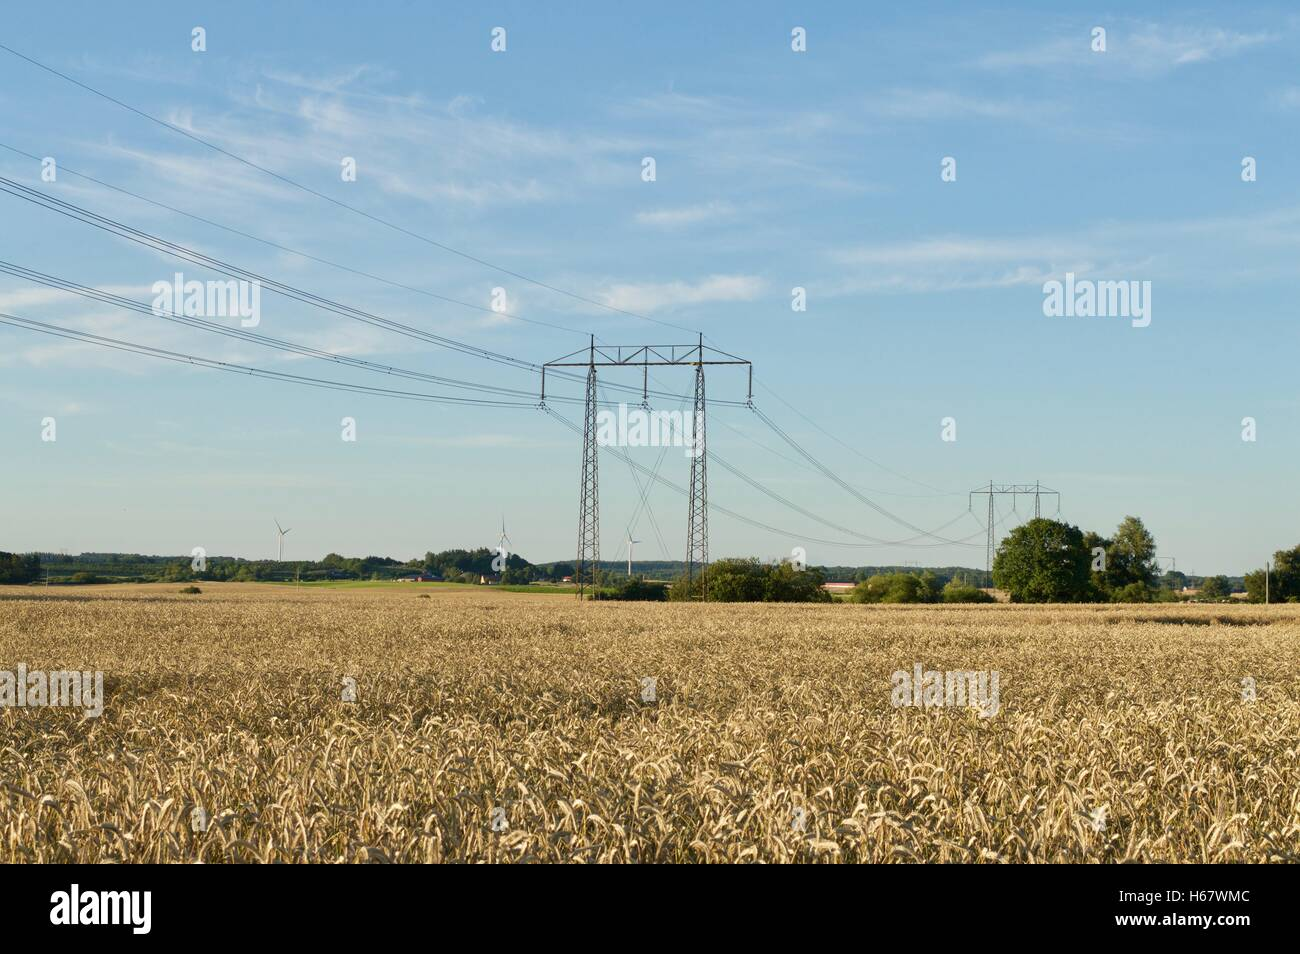 Powerlines over a wheatfield - Stock Image